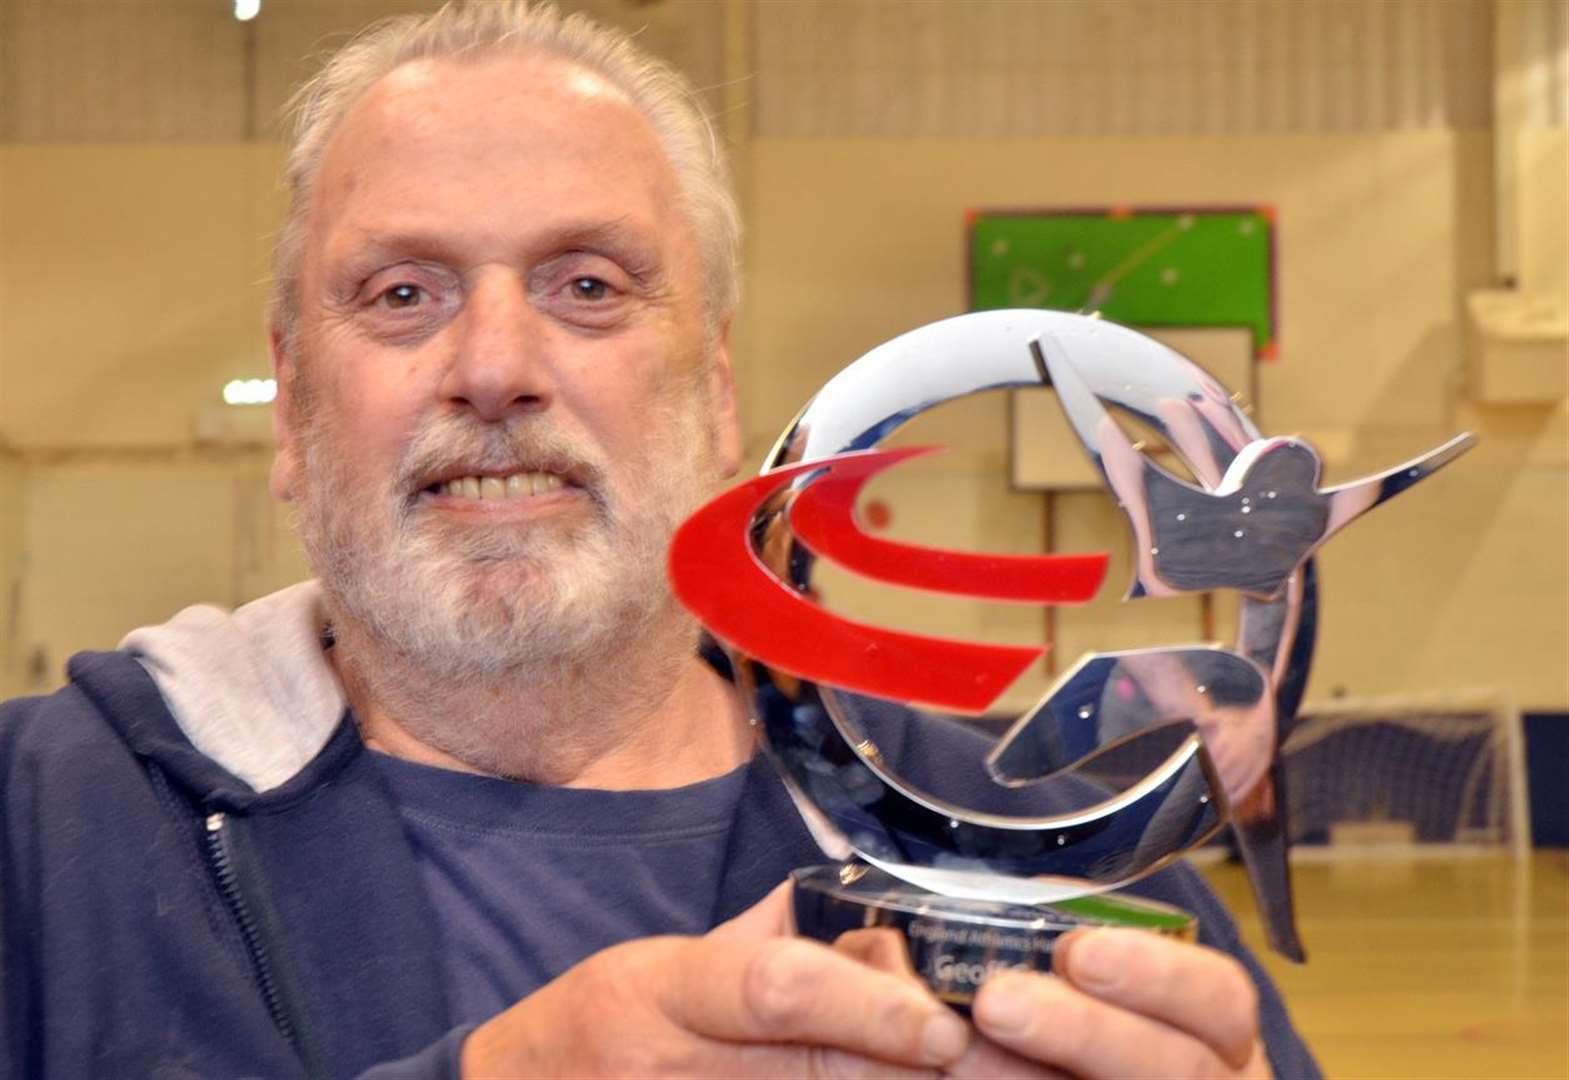 THE BIG INTERVIEW: Holbeach legend Geoff Capes went from 'absolutely nothing' to the world's number one